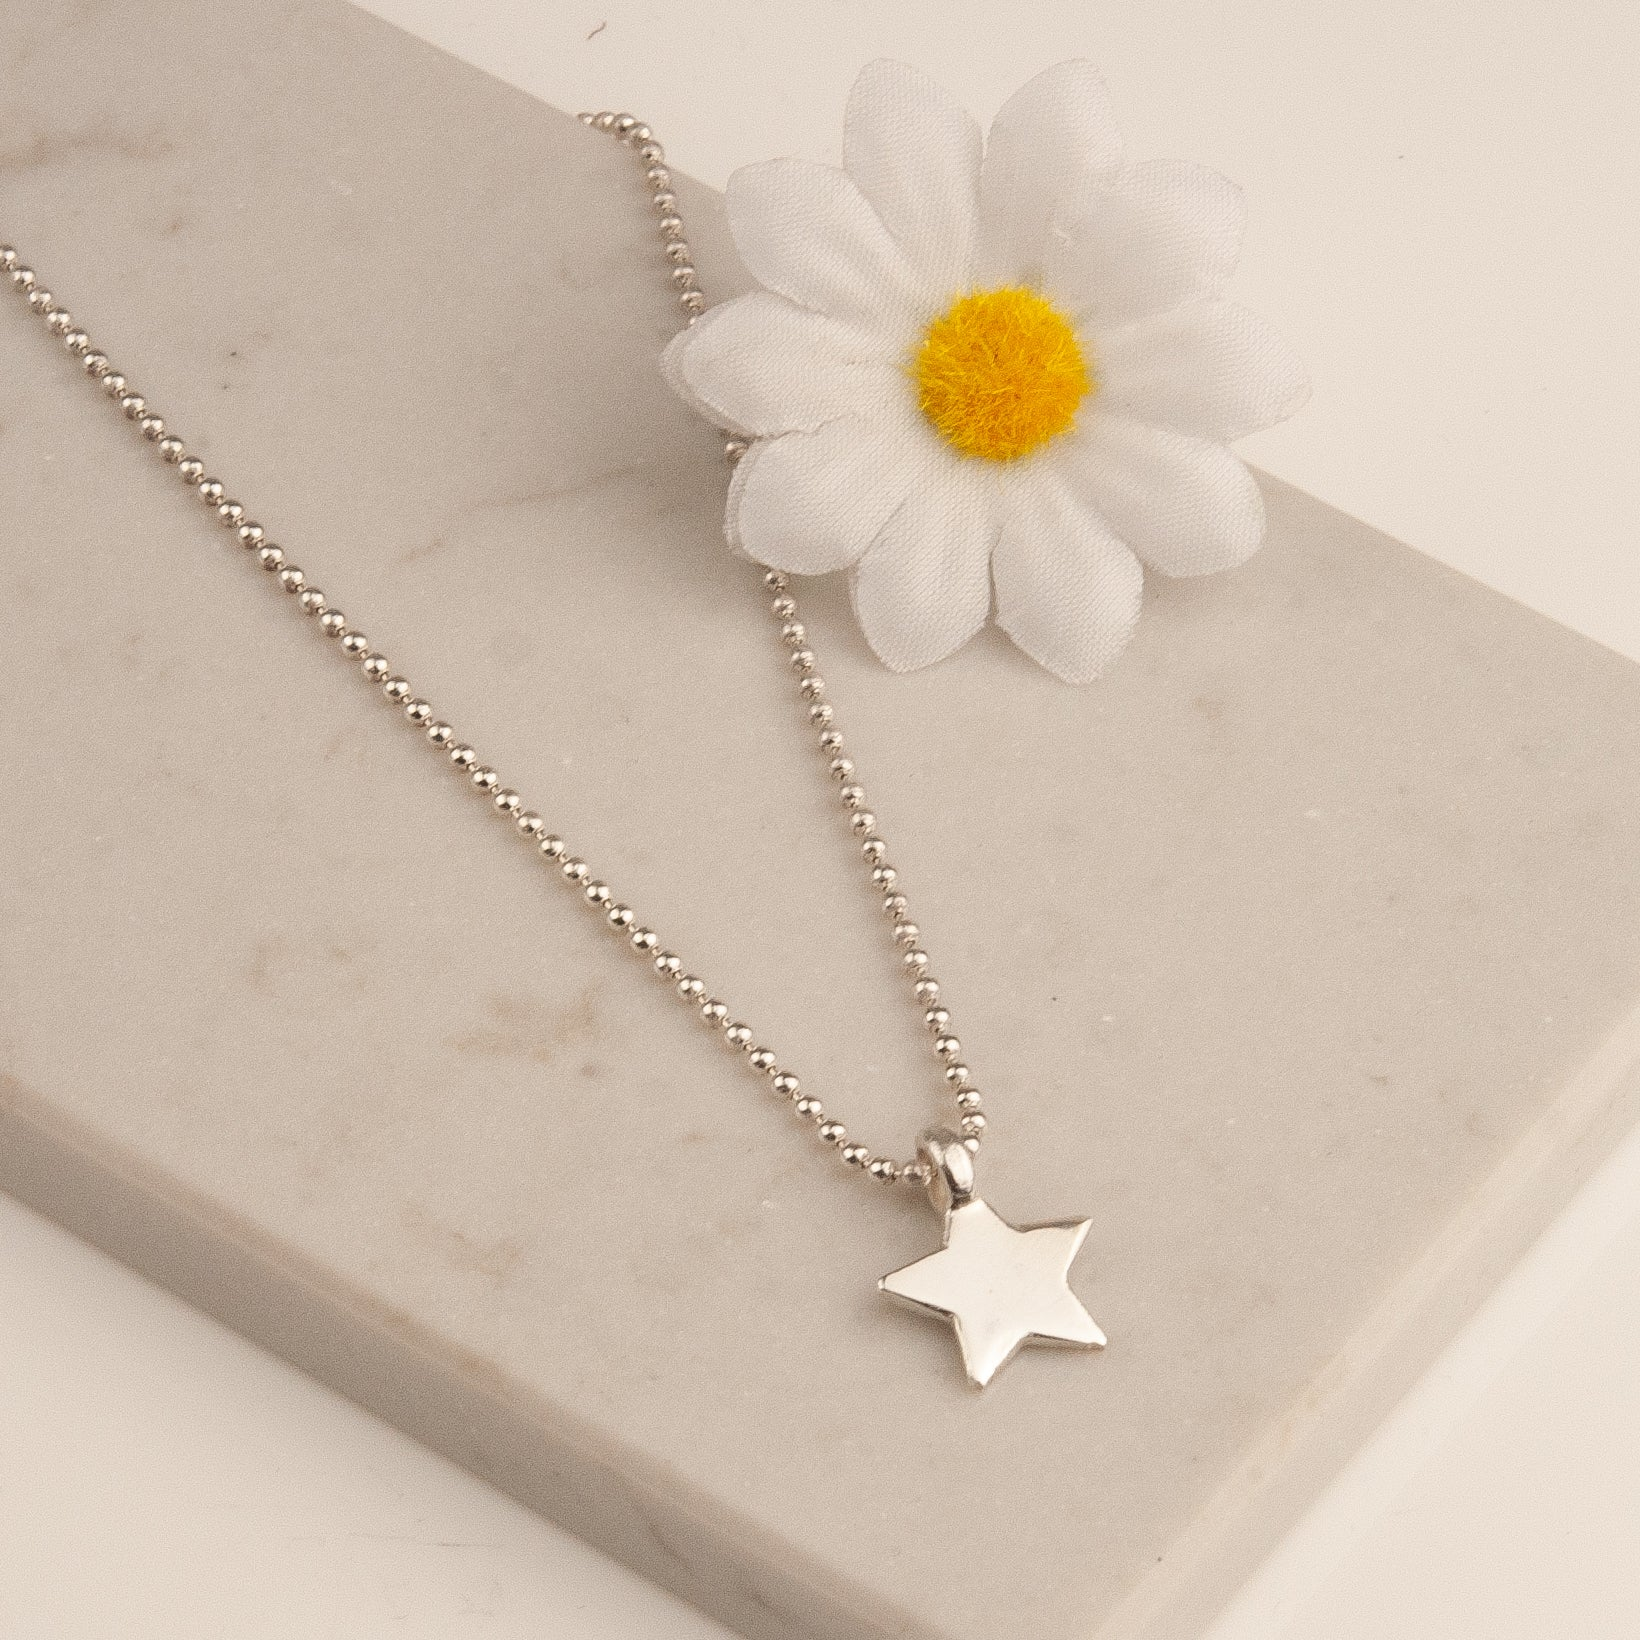 Belle & Bee star necklace